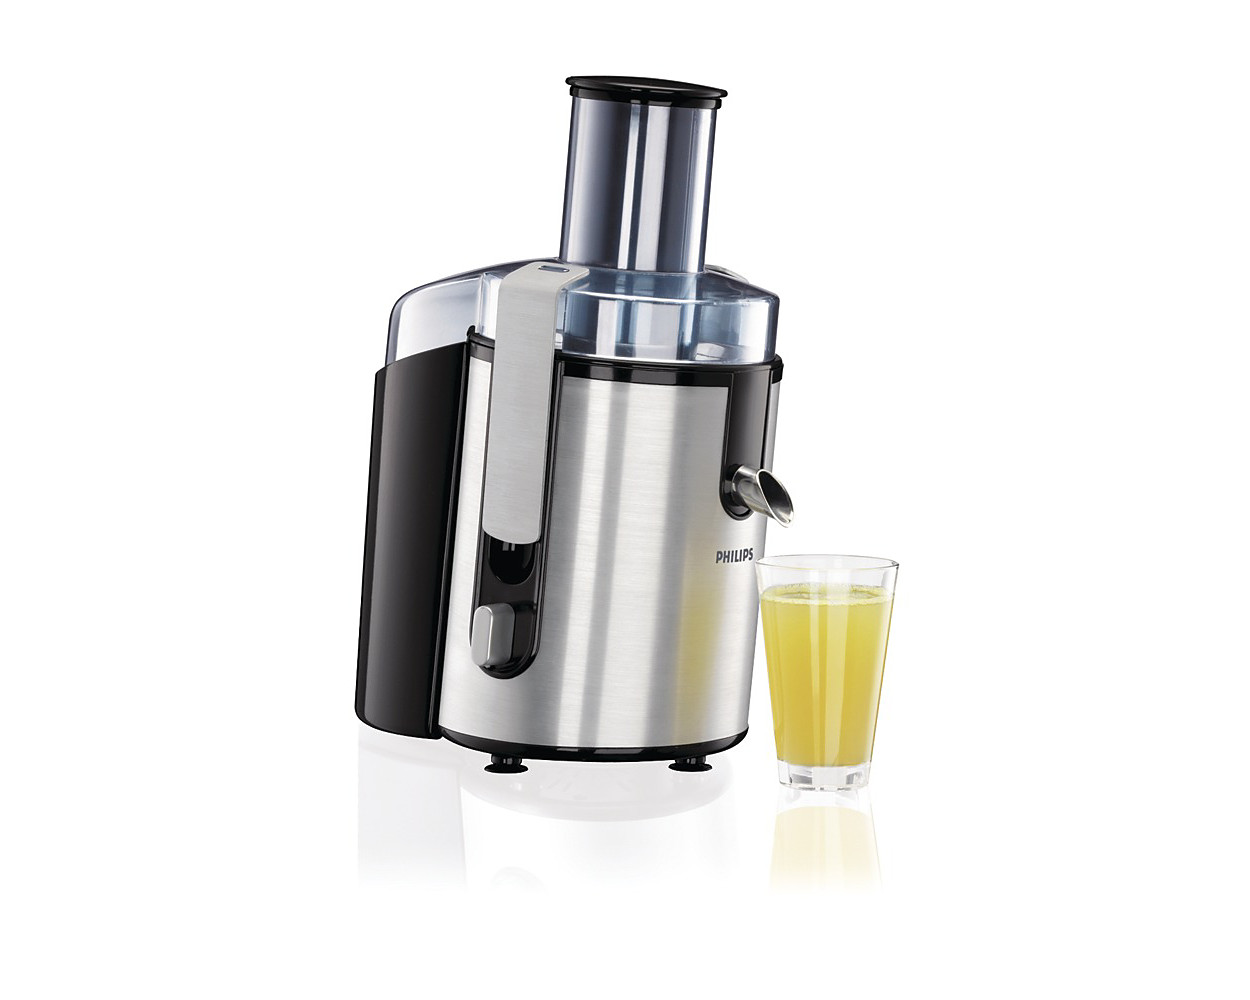 PHILIPS JUICER - CJ Grand Shopping